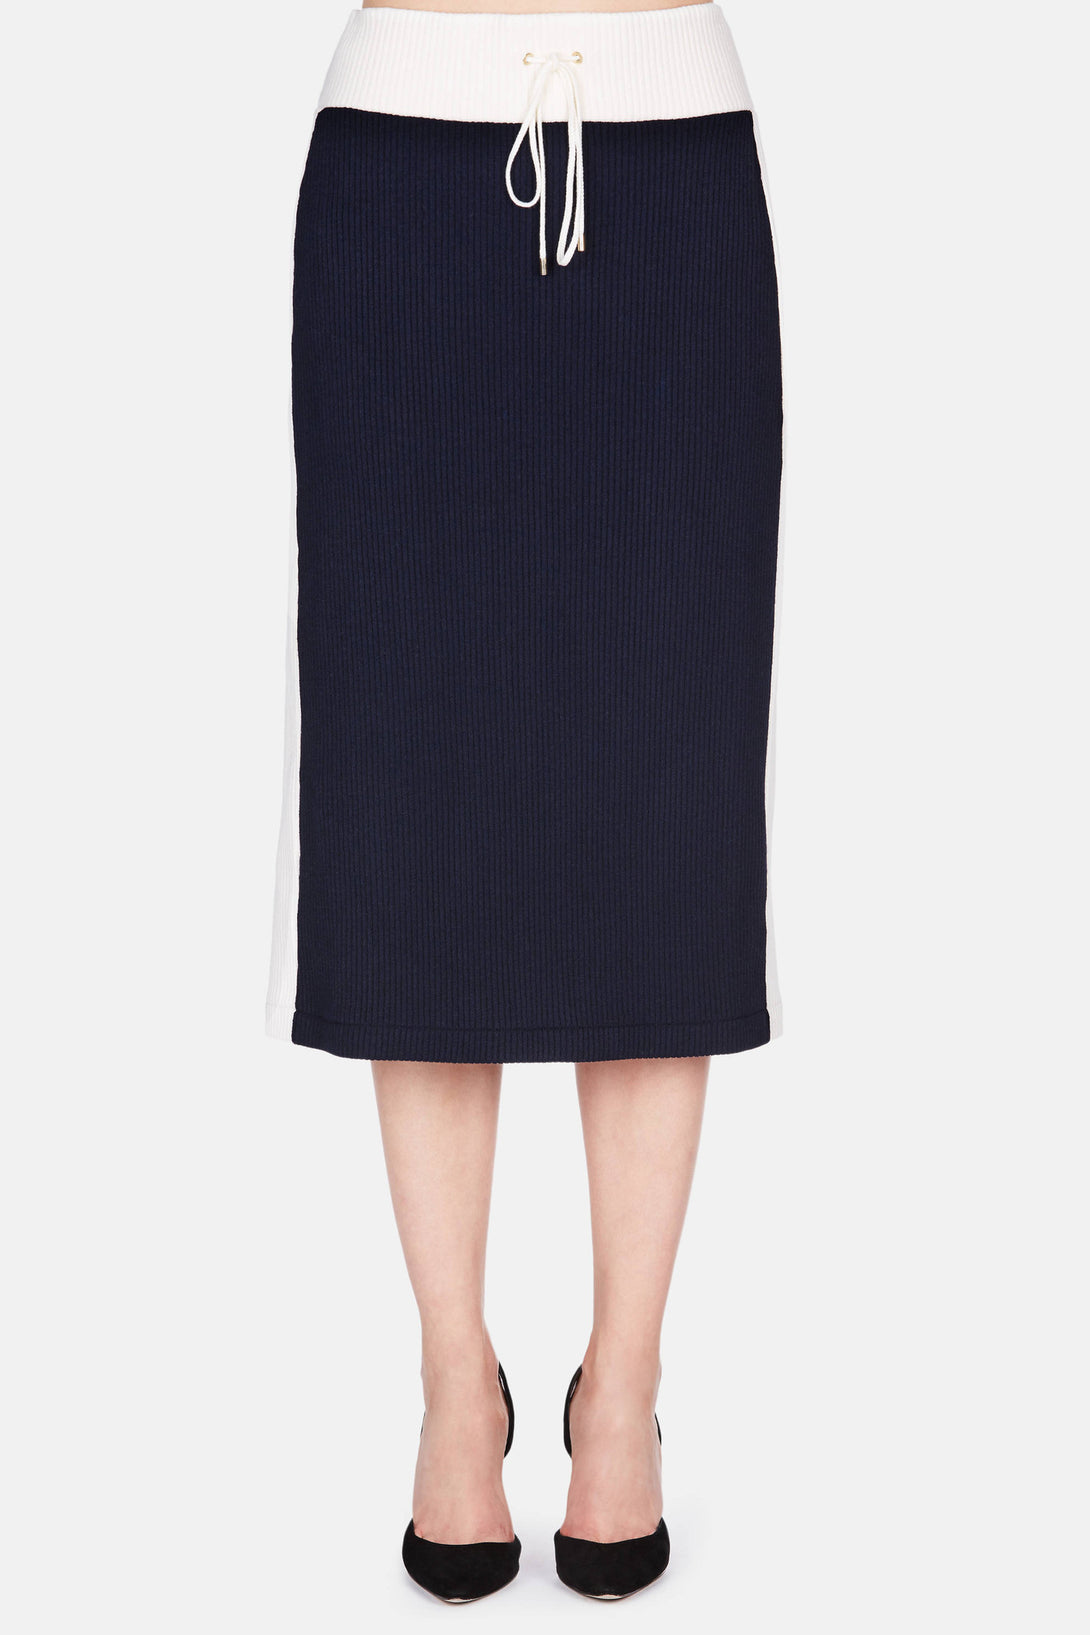 Colorblocked Midi Skirt - Navy